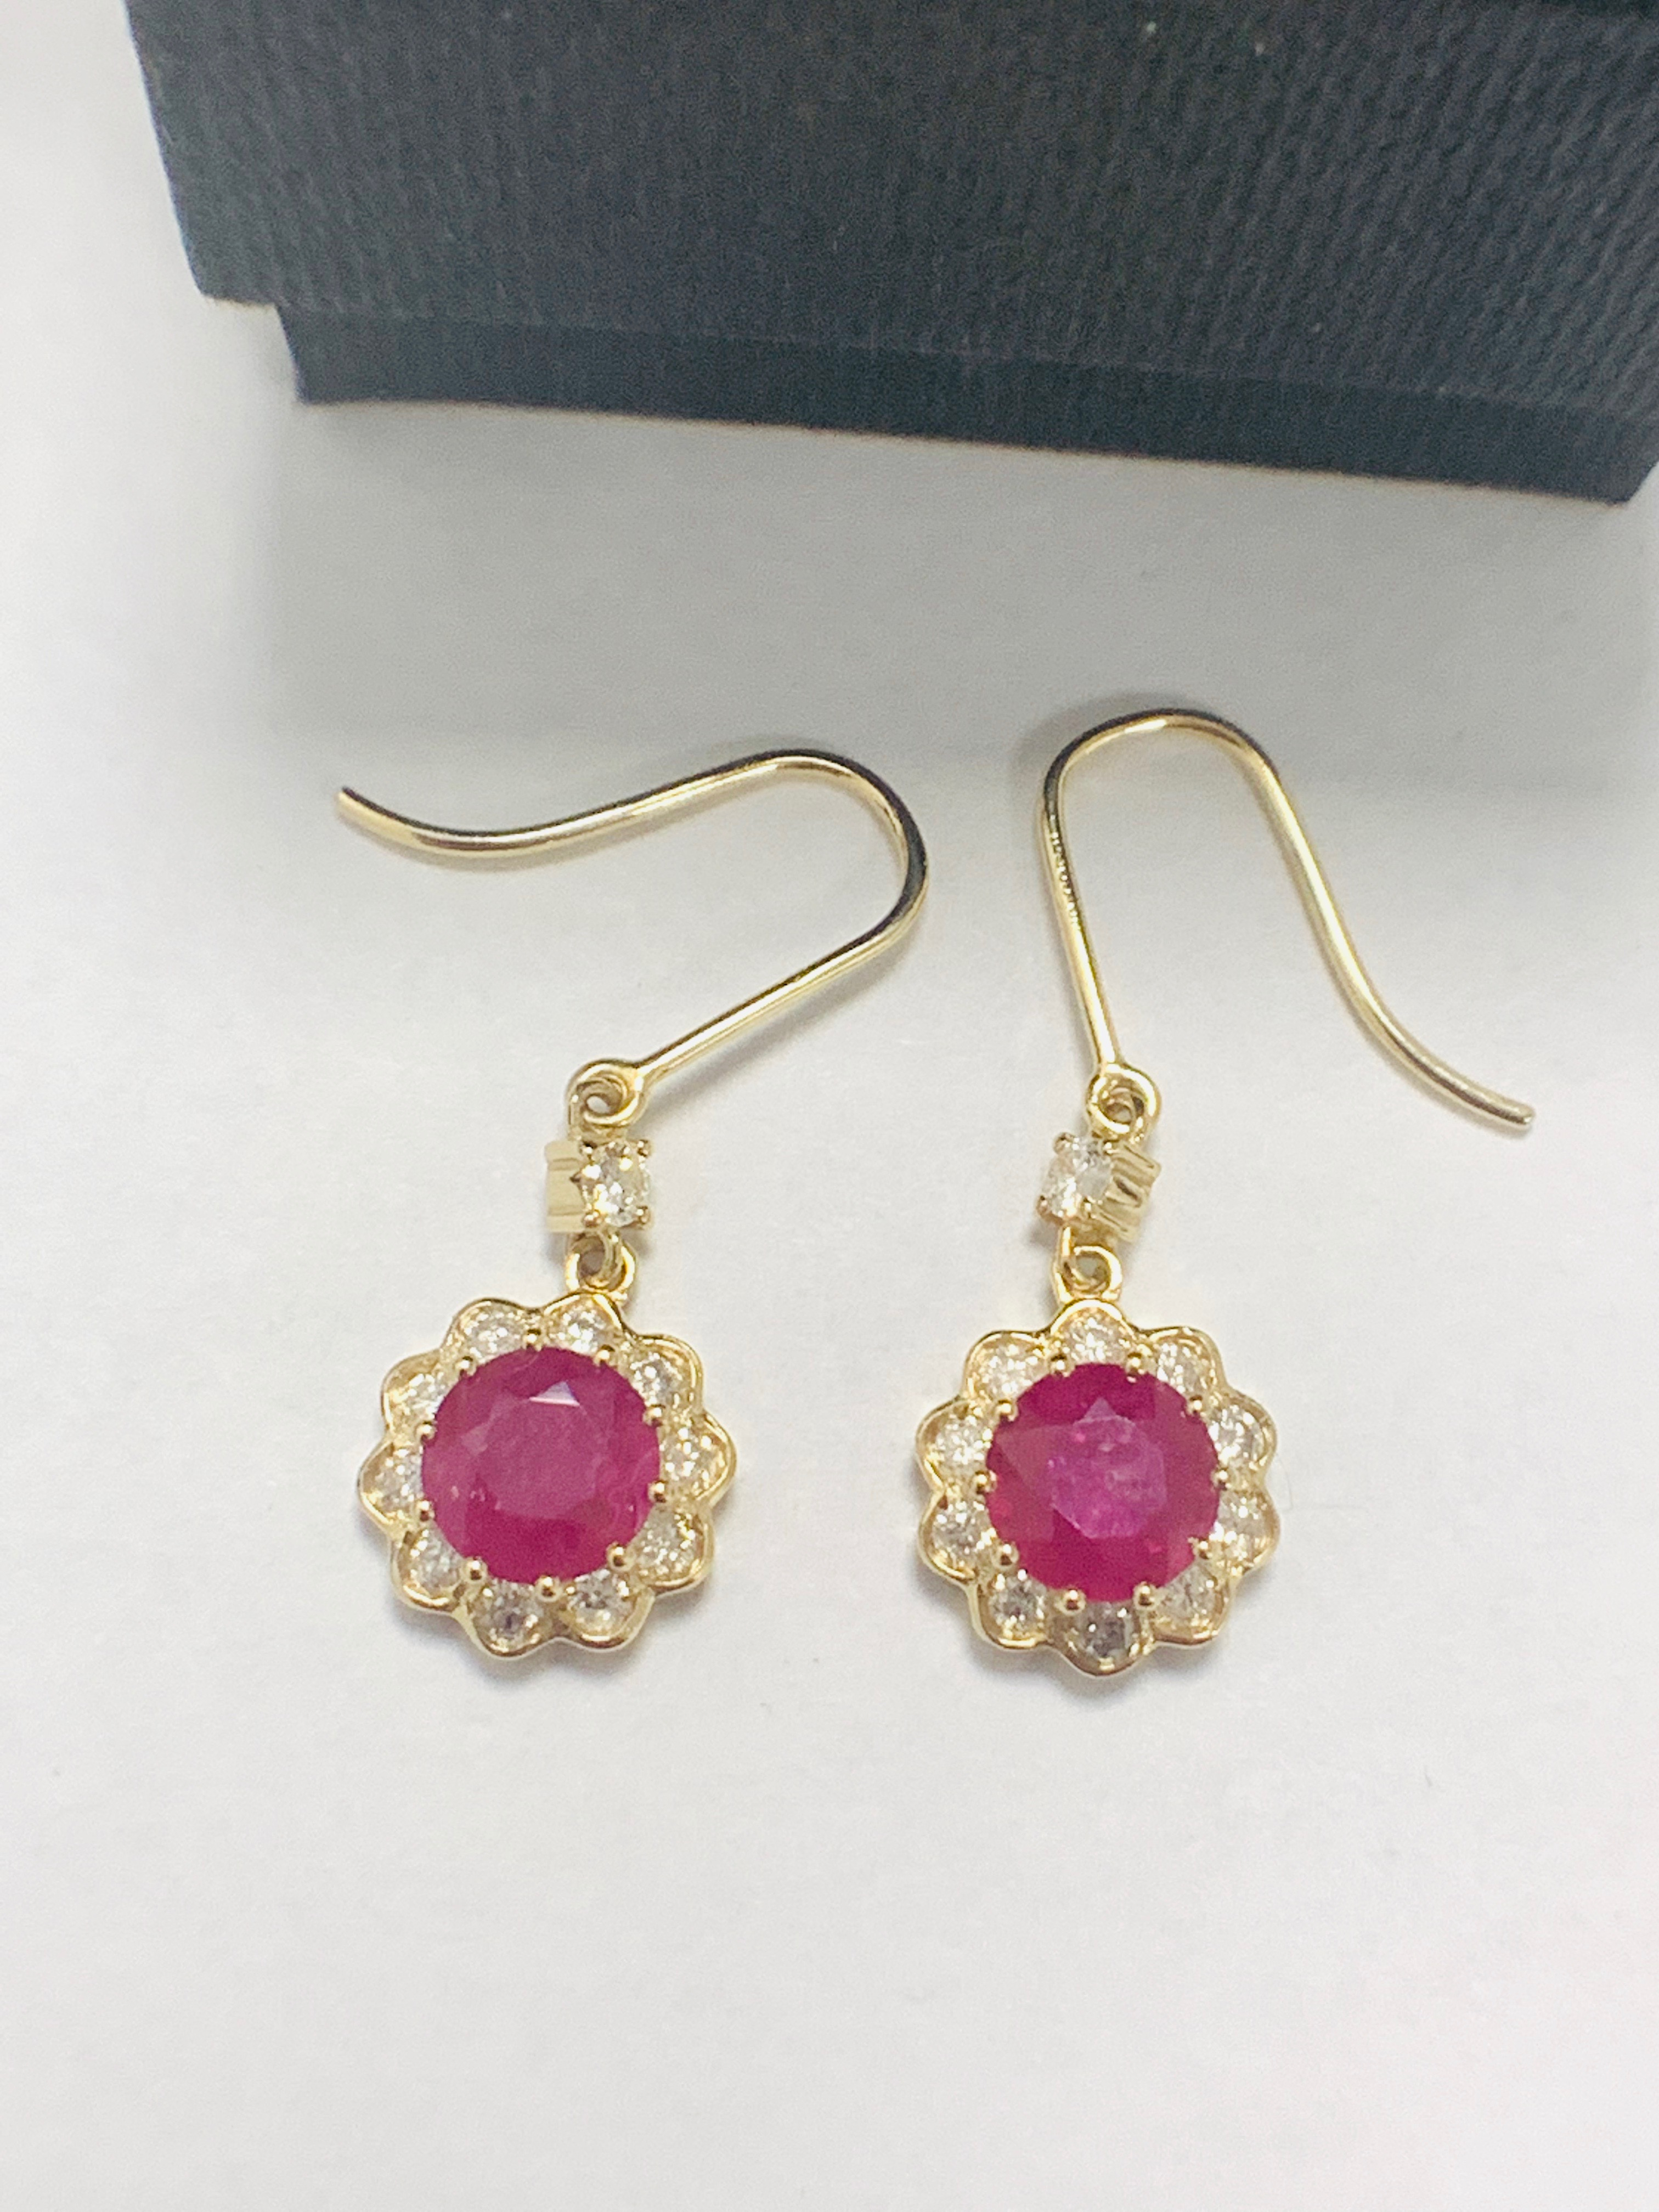 14ct Yellow Gold Ruby and Diamond earrings featuring, 2 round cut, red Rubies (2.22ct TSW) - Image 2 of 8